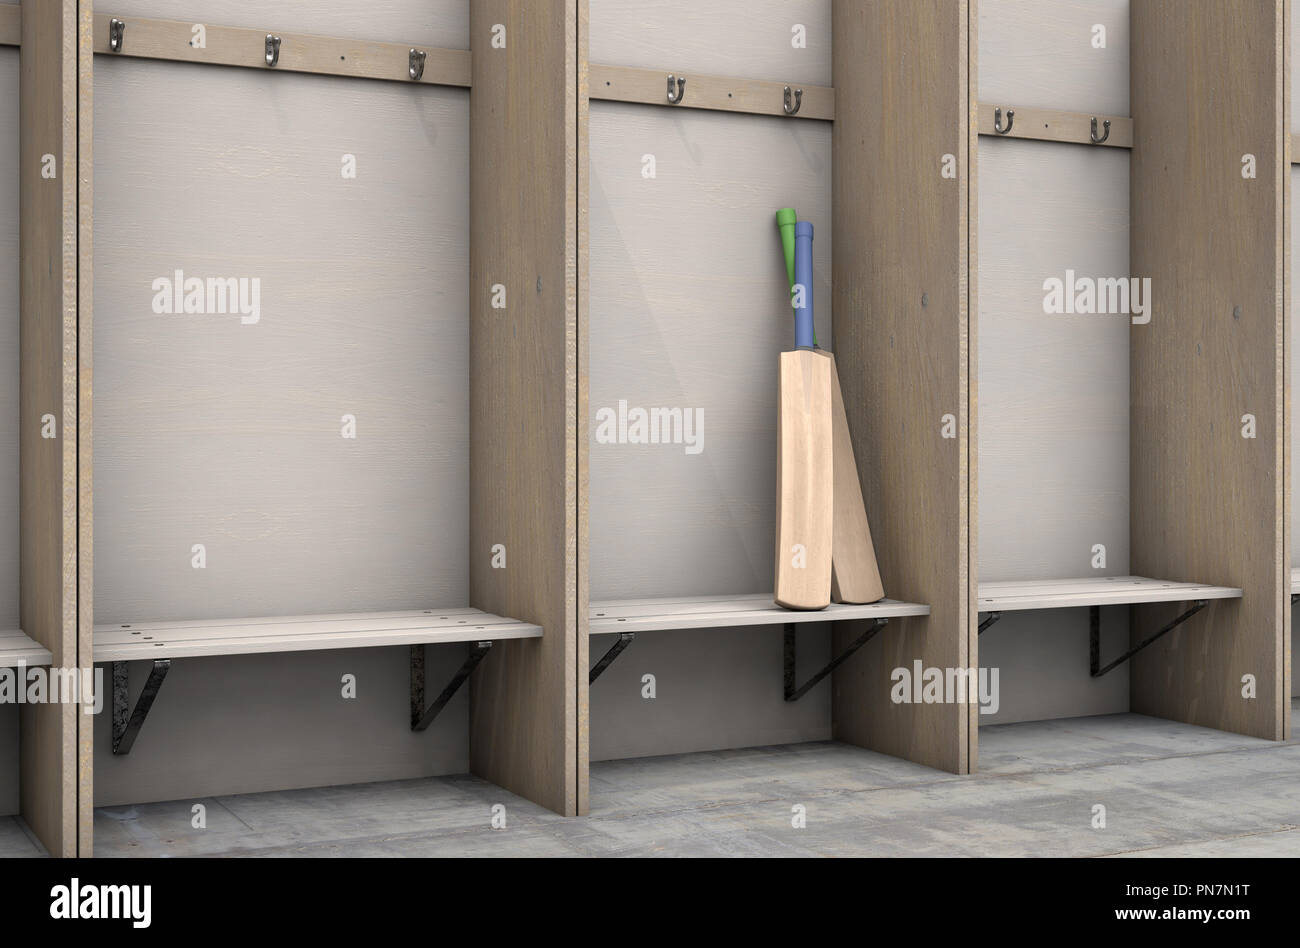 Peachy Two Cricket Bats In A Wooden Cubicle With A Bench And Machost Co Dining Chair Design Ideas Machostcouk